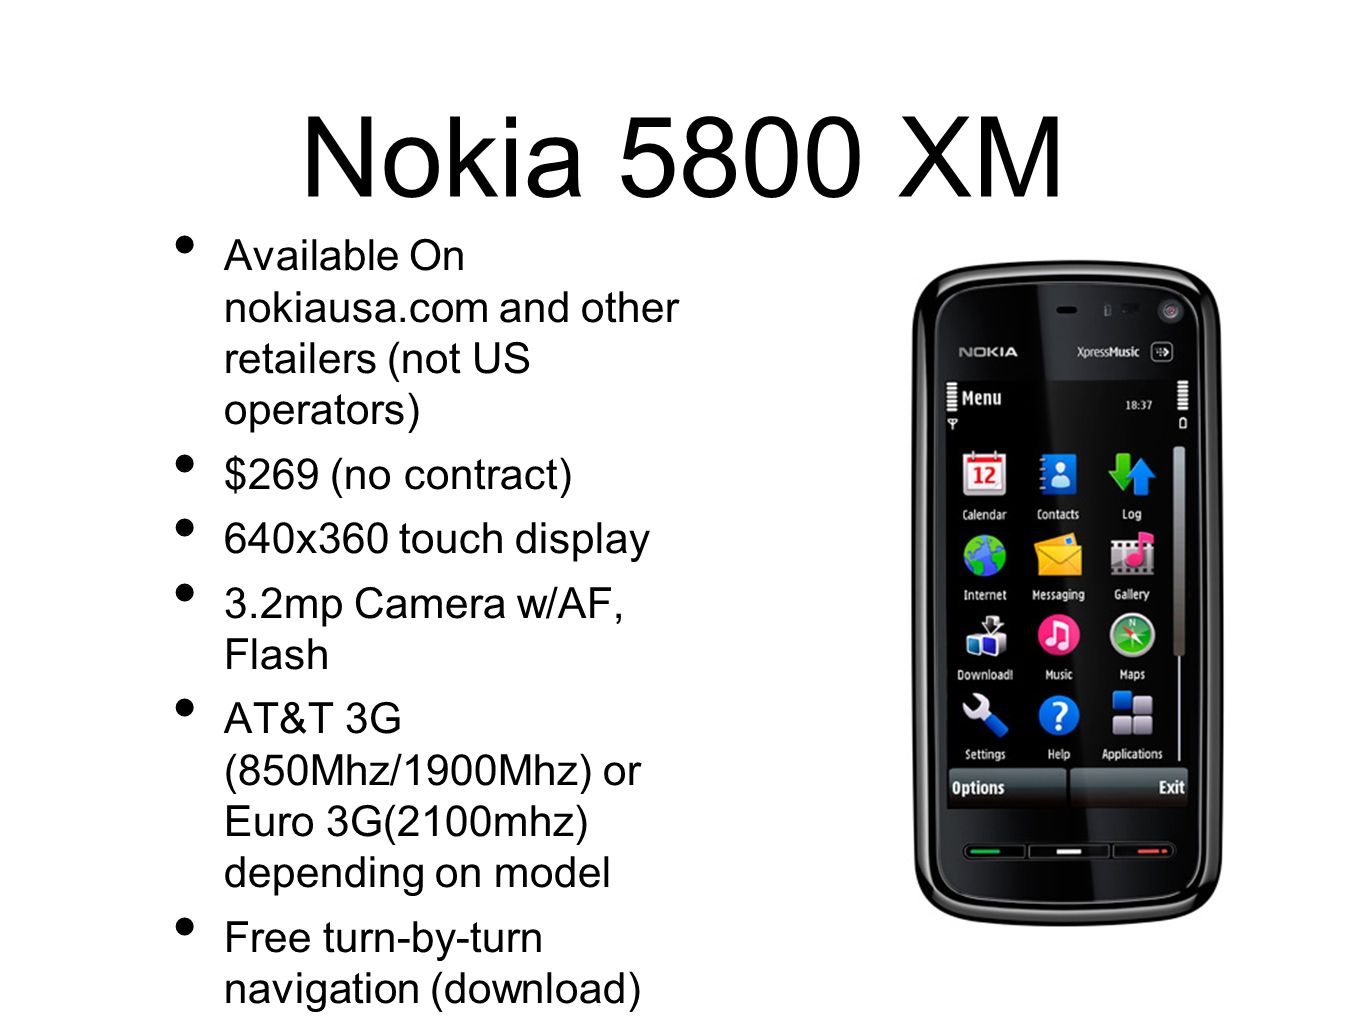 Nokia 5800 XMAvailable On nokiausa.com and other retailers (not US operators) $269 (no contract)